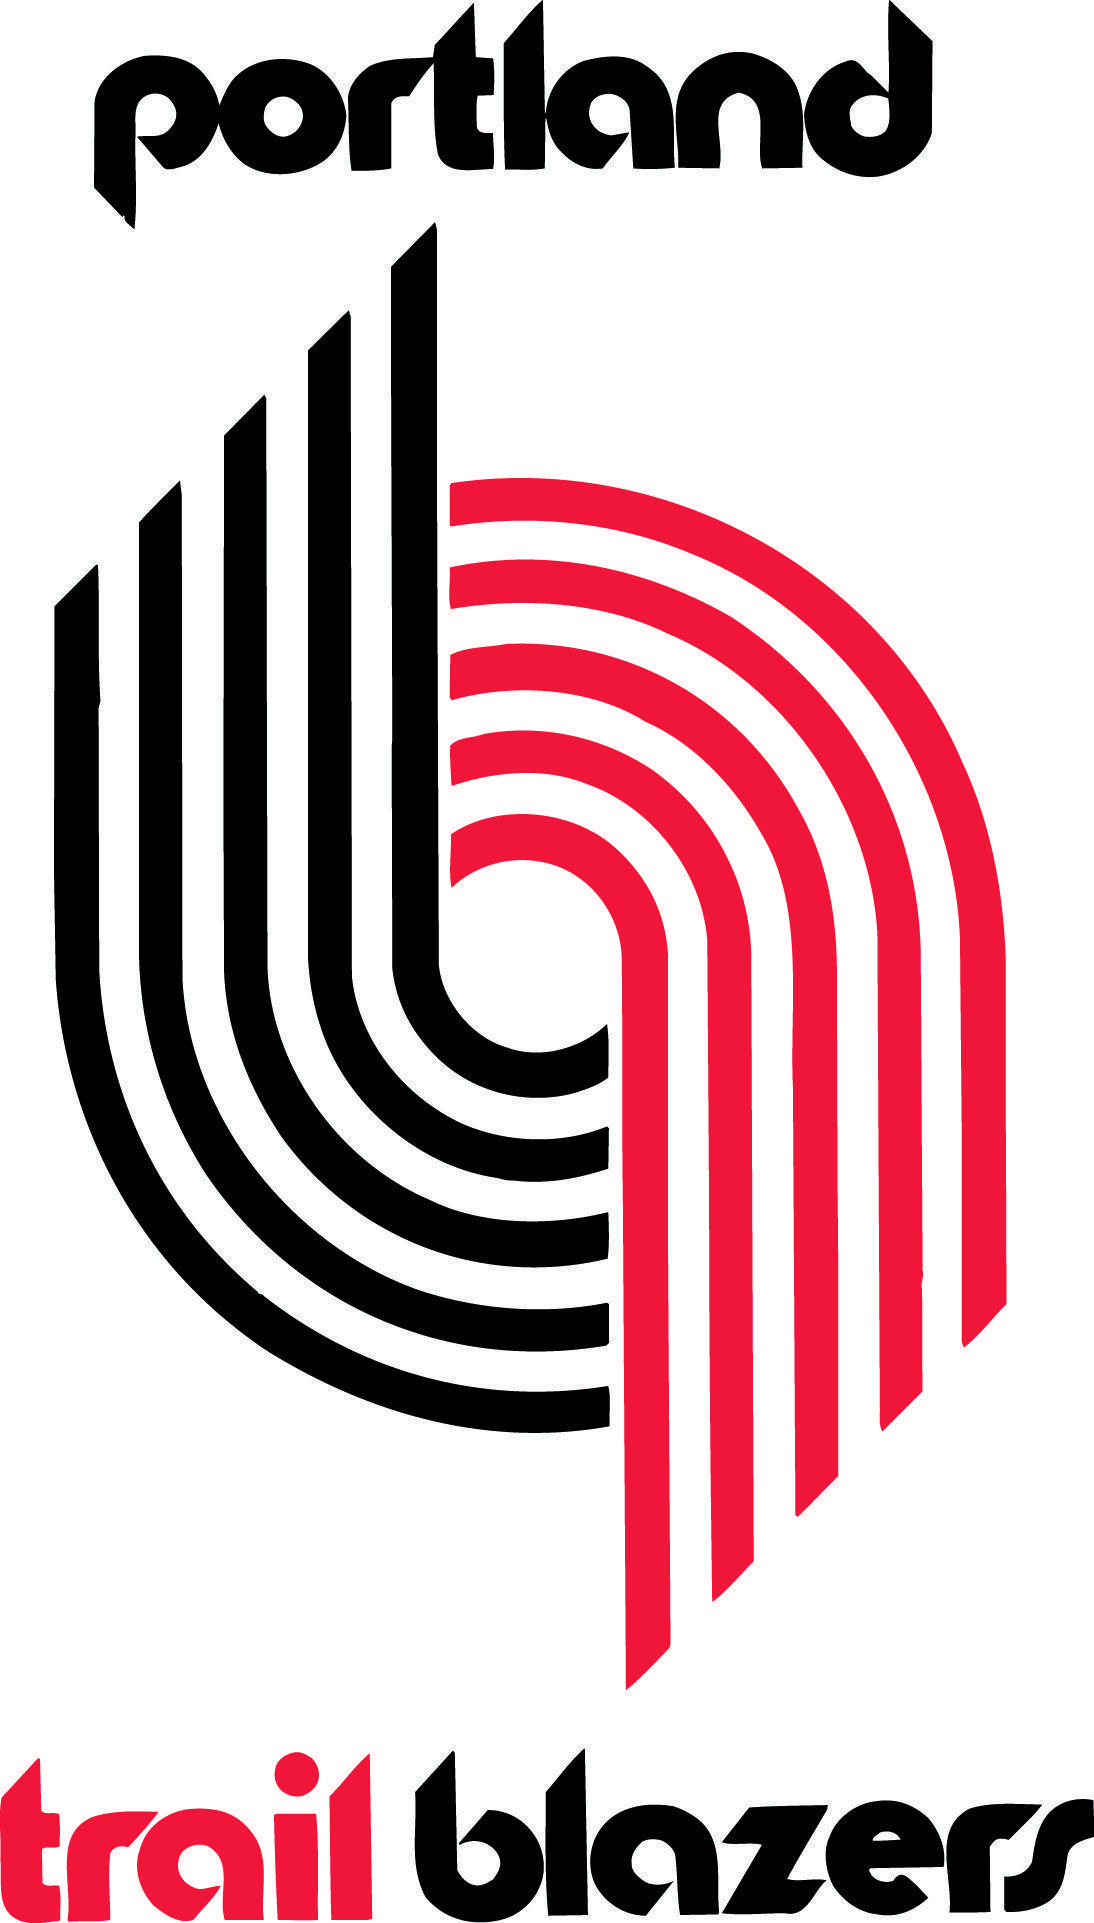 The Portland Trail Blazers, commonly known as the Blazers, are a ...